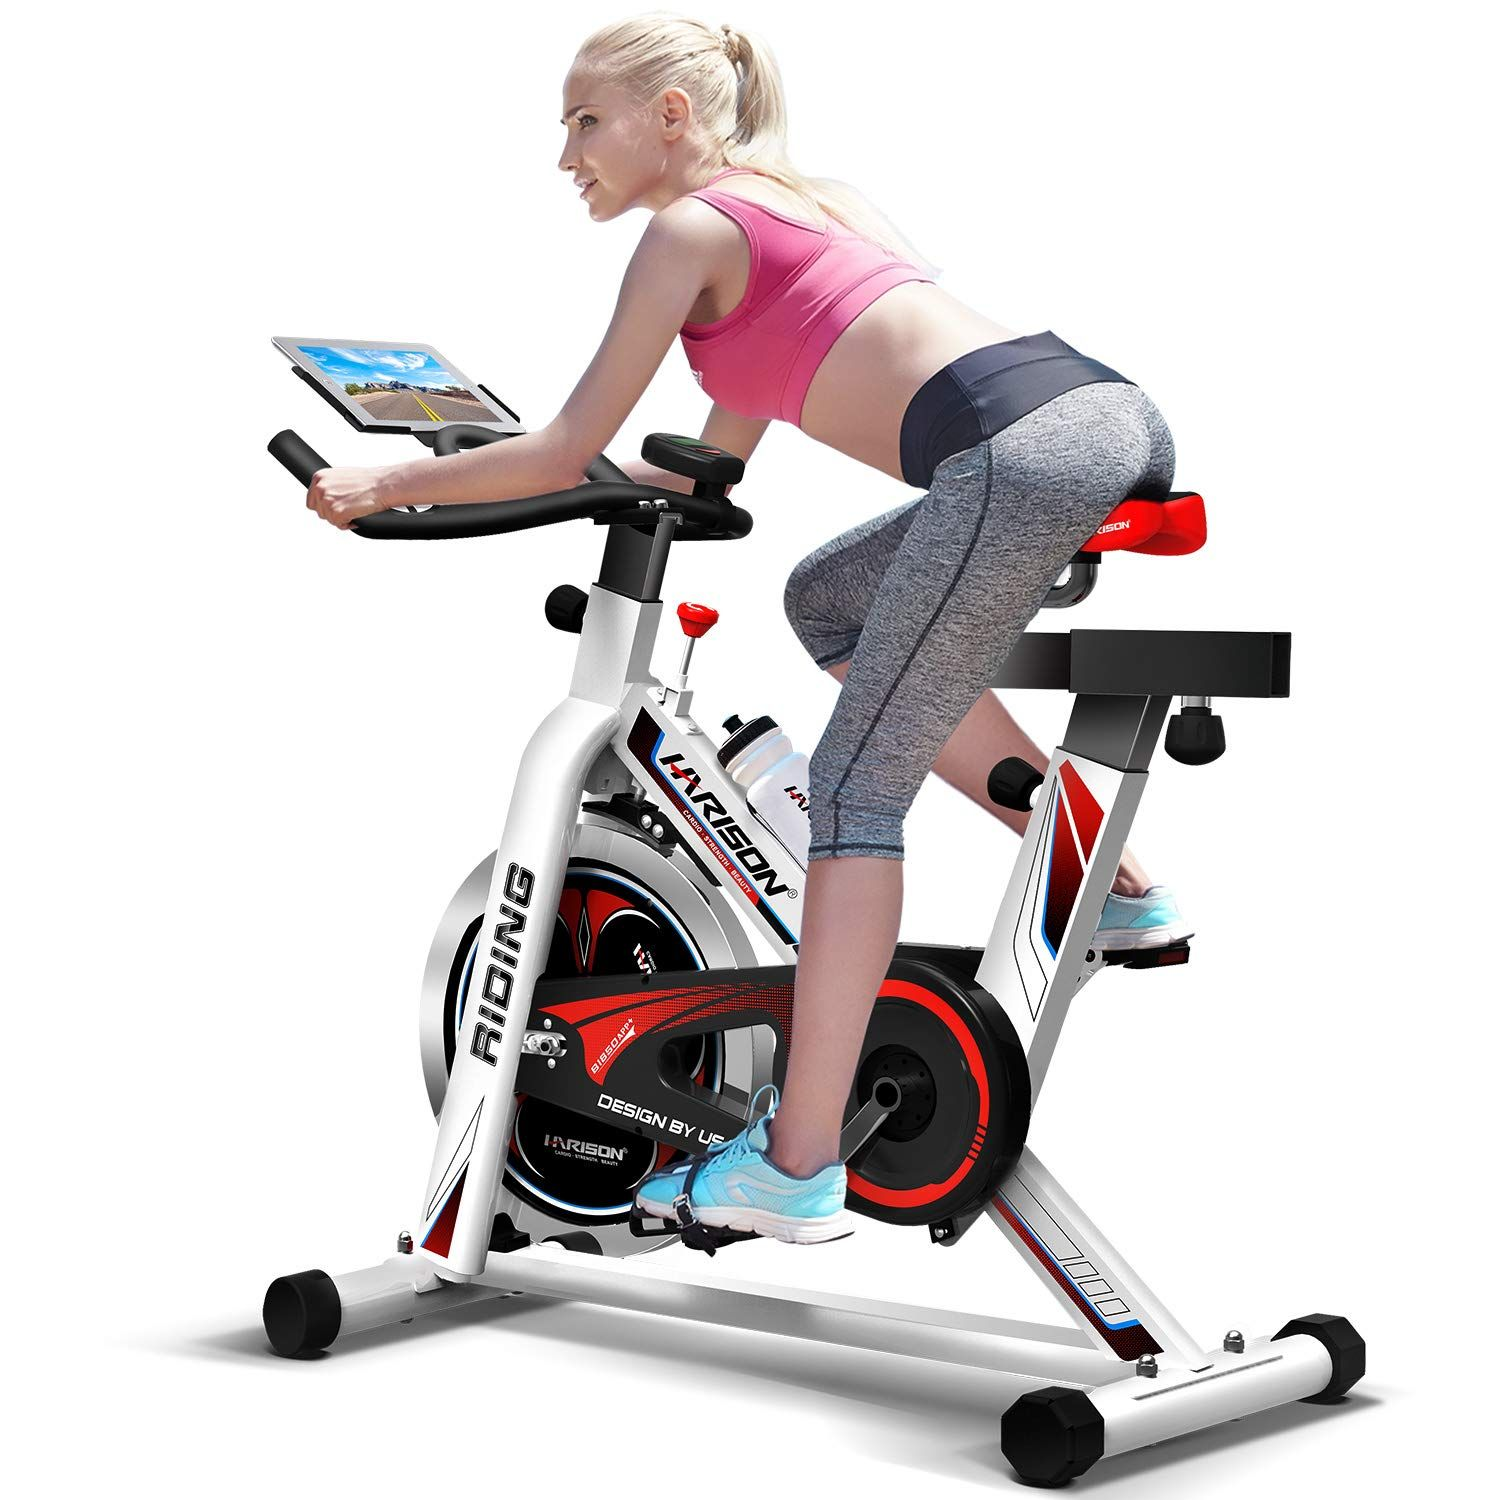 Best Spinning Bike New Model For 2020 Fashion Design Sgs